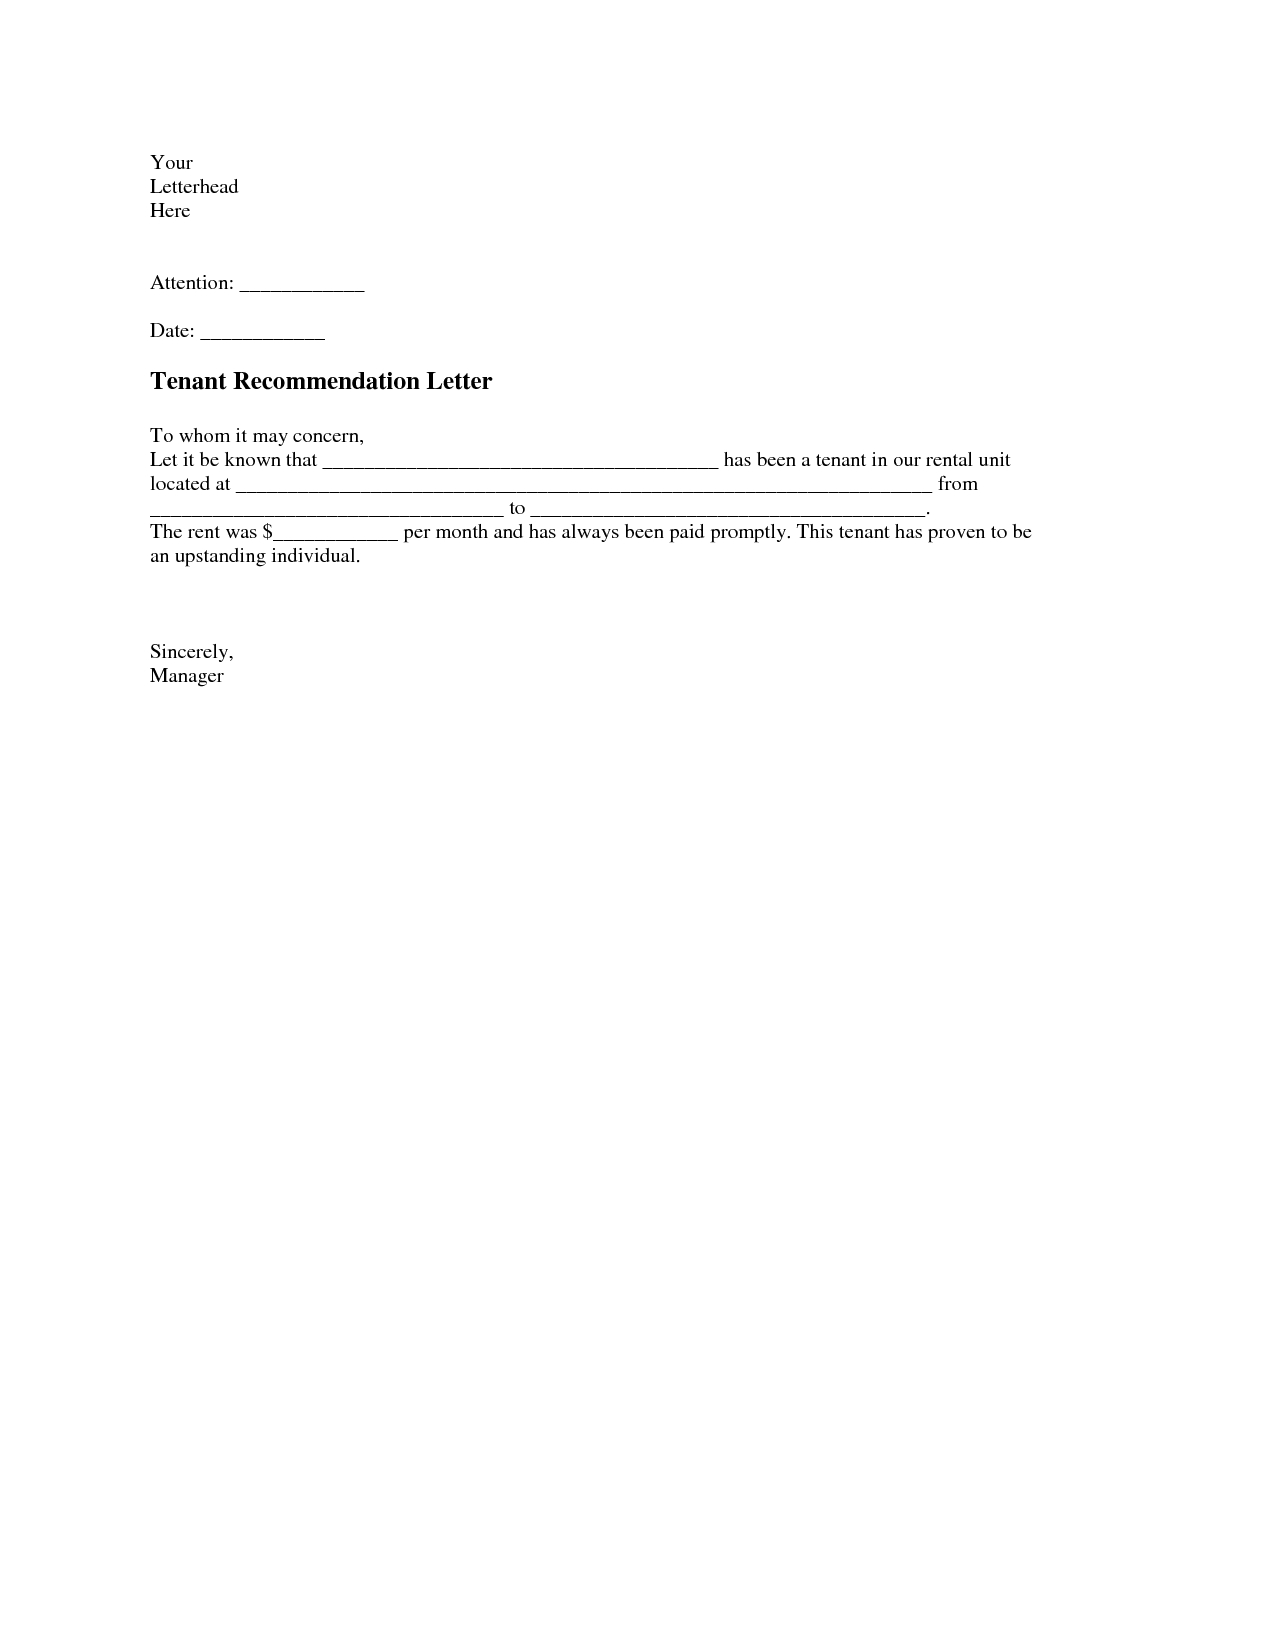 Tenant Reference Letter Template - Tenant Re Mendation Letter A Tenant Re Mendation Letter is